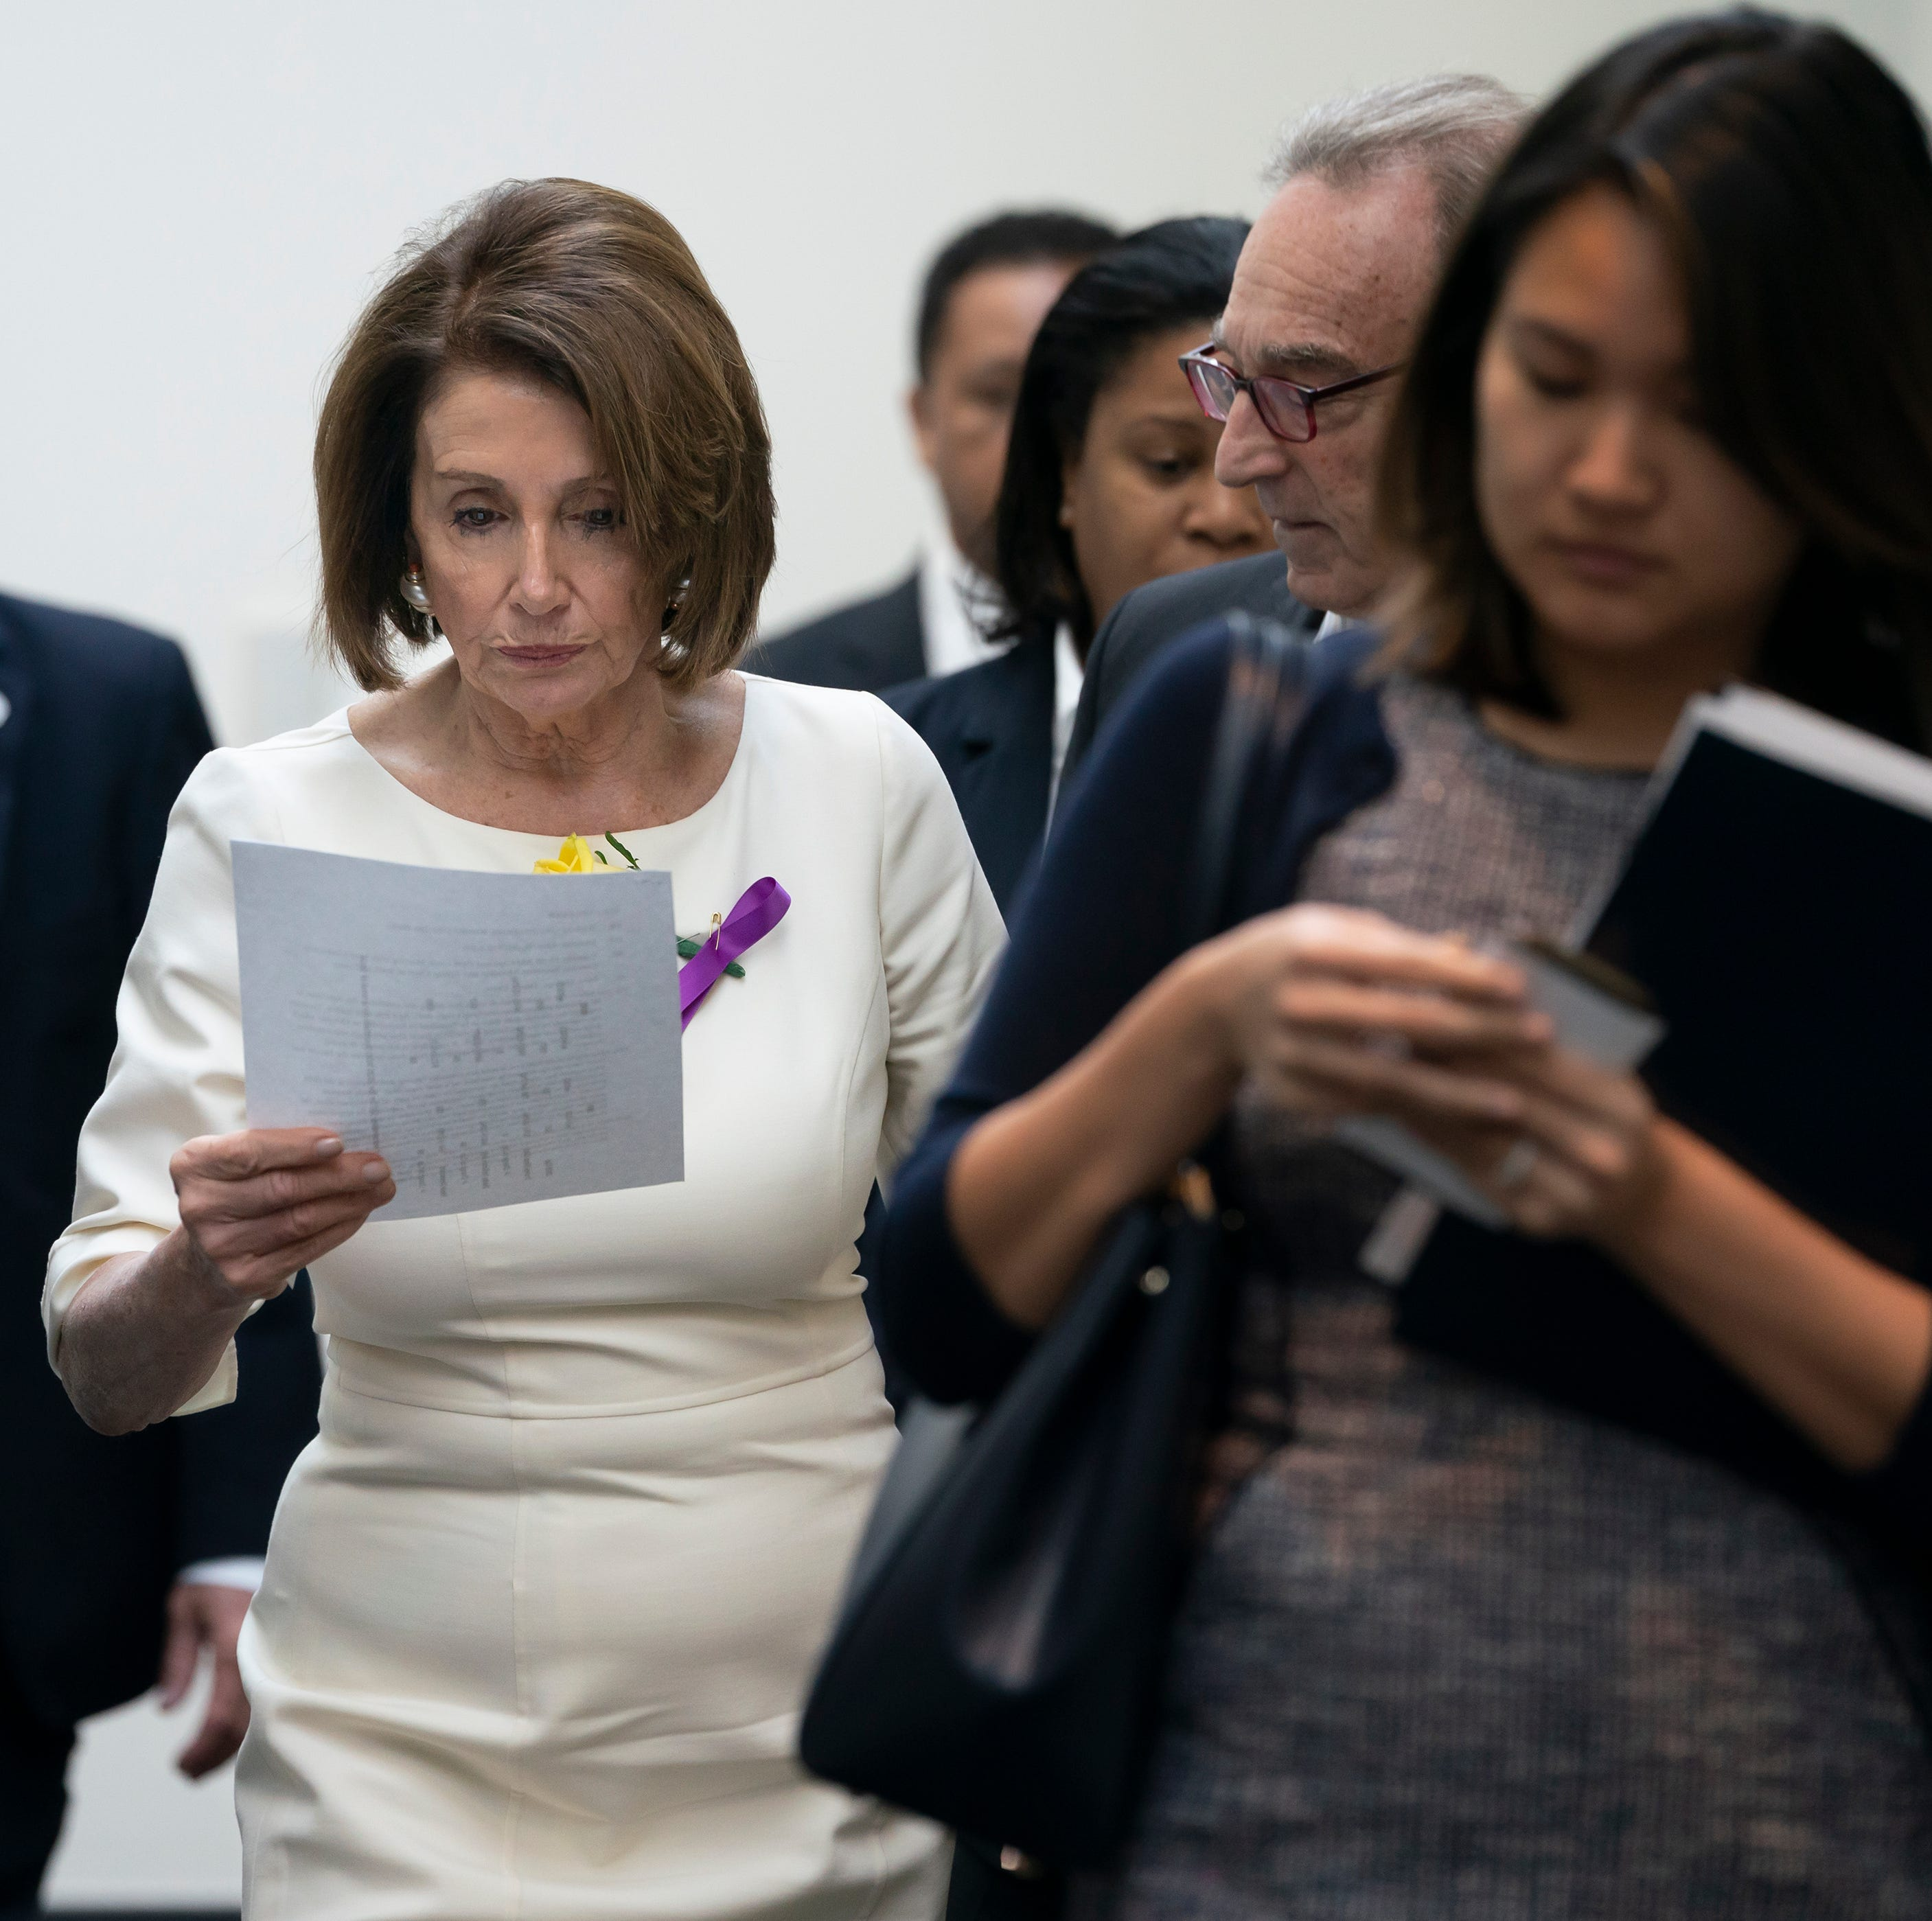 Speaker of the House Nancy Pelosi, D-Calif., departs a meeting with the Democratic Caucus at the Capitol in Washington, Tuesday, May 21, 2019.